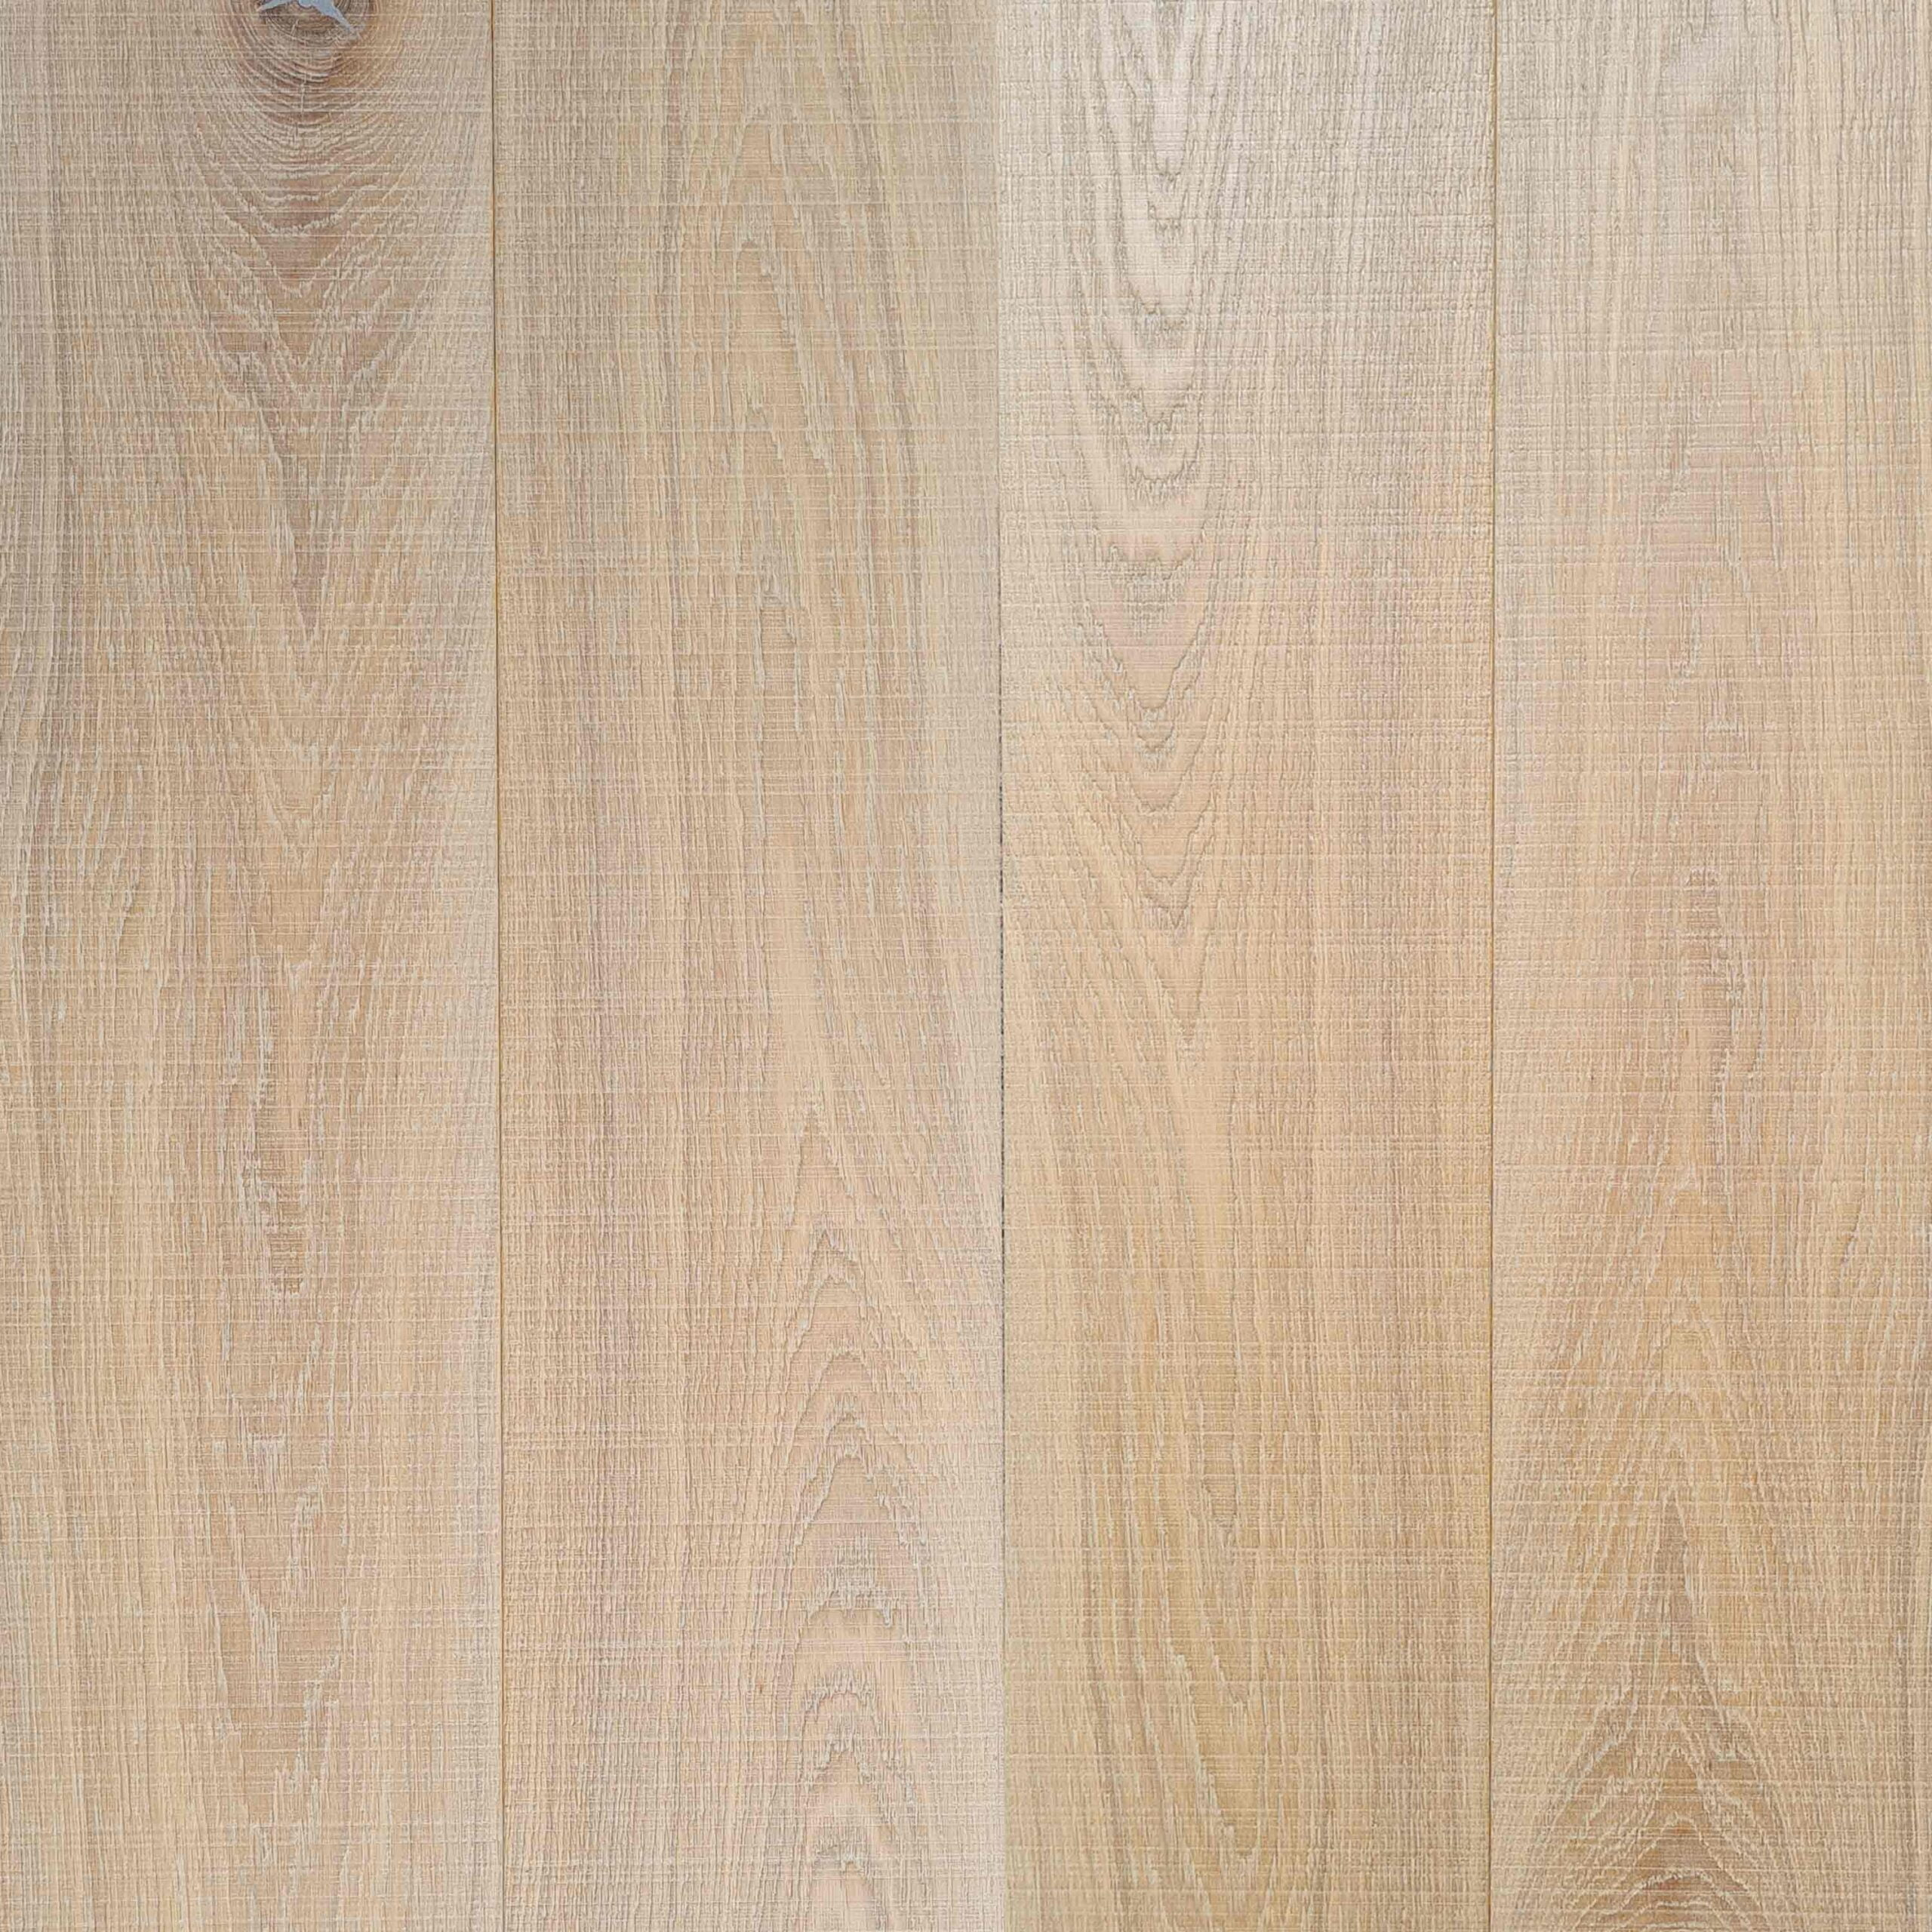 Dry Biscuit finish on Sawn and Brushed engineered oak